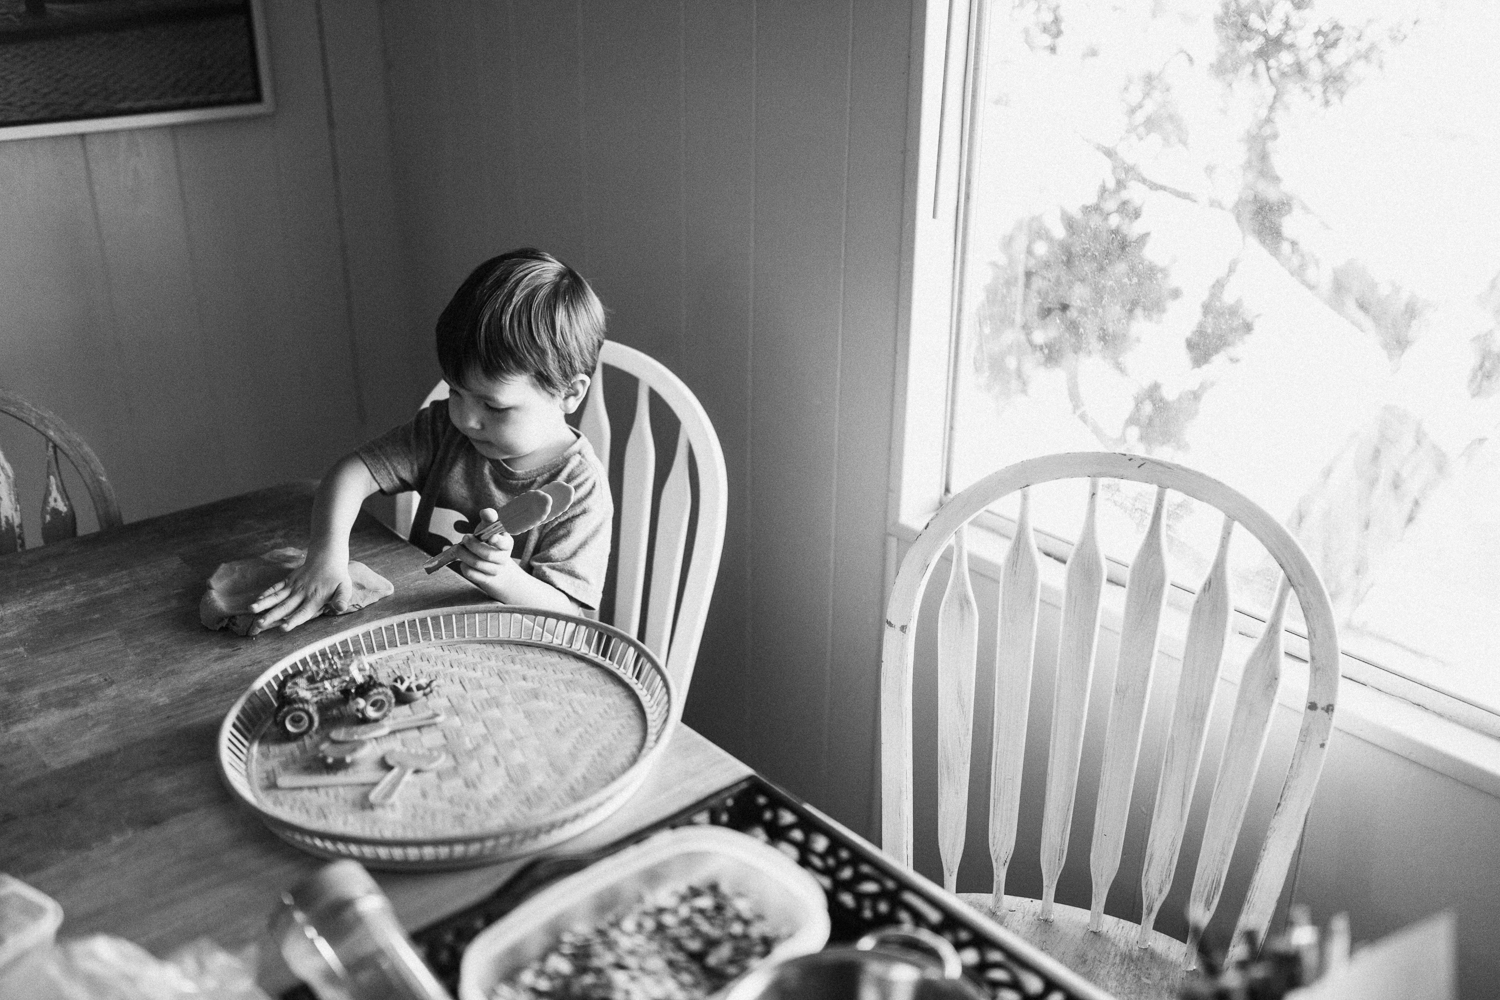 young-boy-playing-with-playdough-in-the-kitchen-lifestyle-photography-session-in-san-diego-california